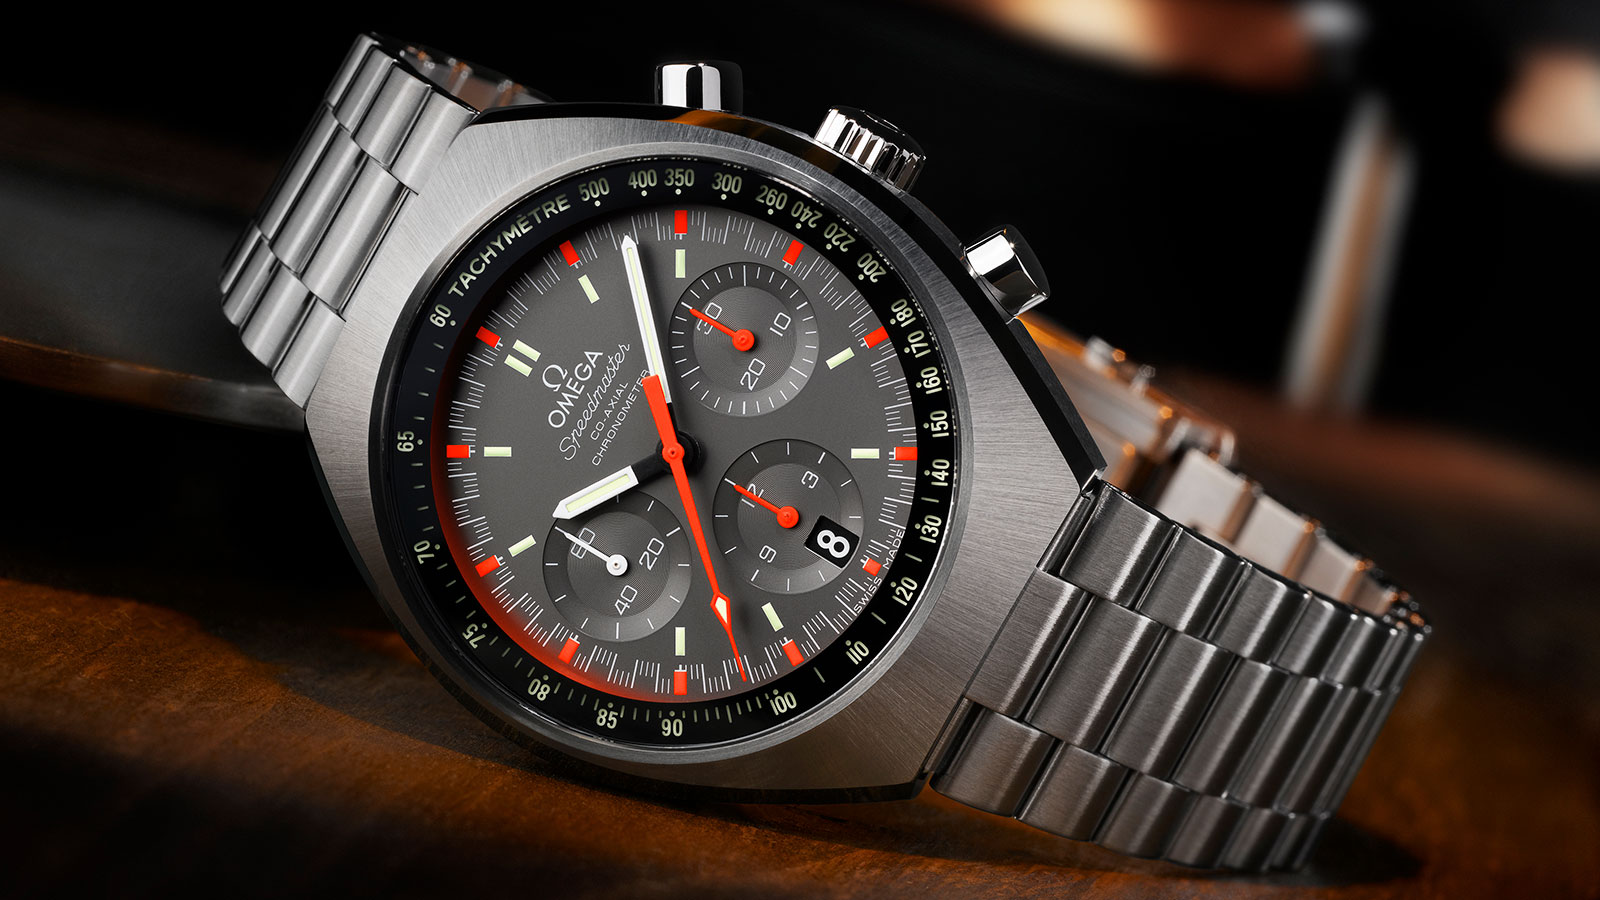 Speedmaster Mark II Mark II Co‑Axial Chronograph 42.4 x 46.2 mm Watch - 327.10.43.50.06.001